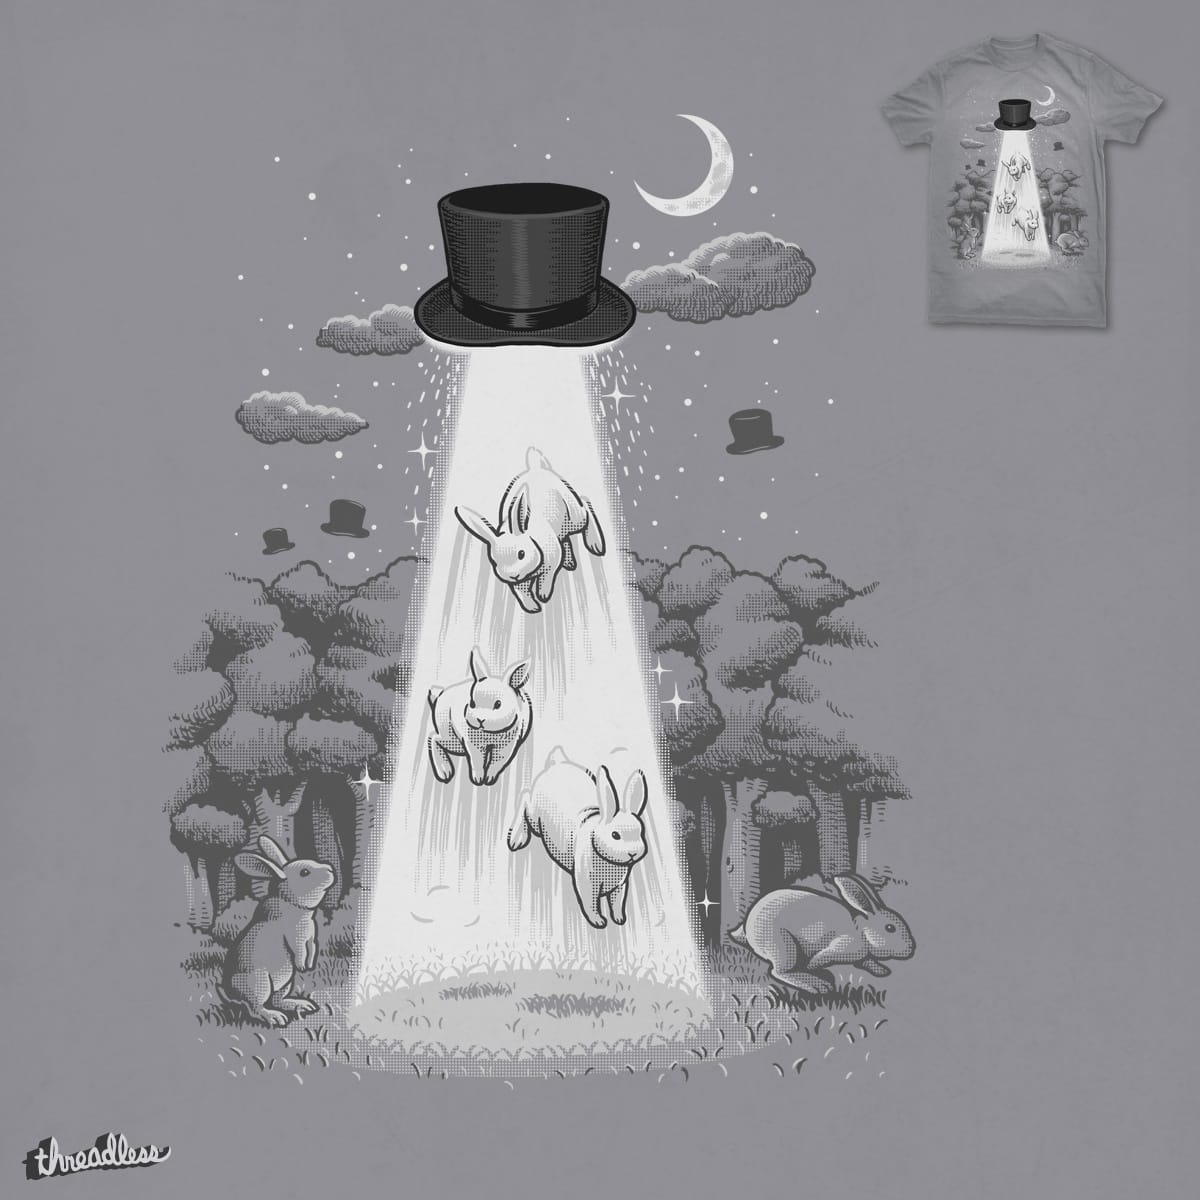 Unidentified Flying Magic Hat by ben chen on Threadless